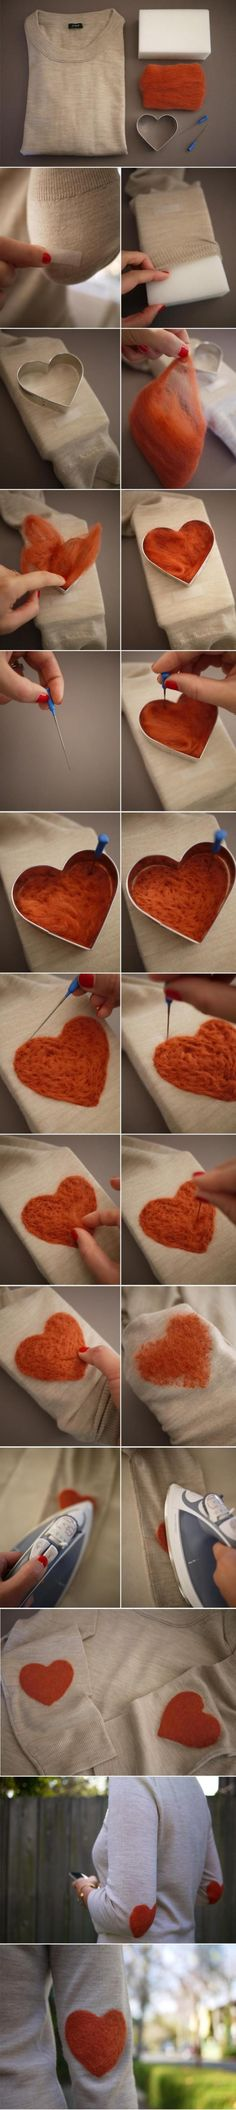 This is such a cute idea!